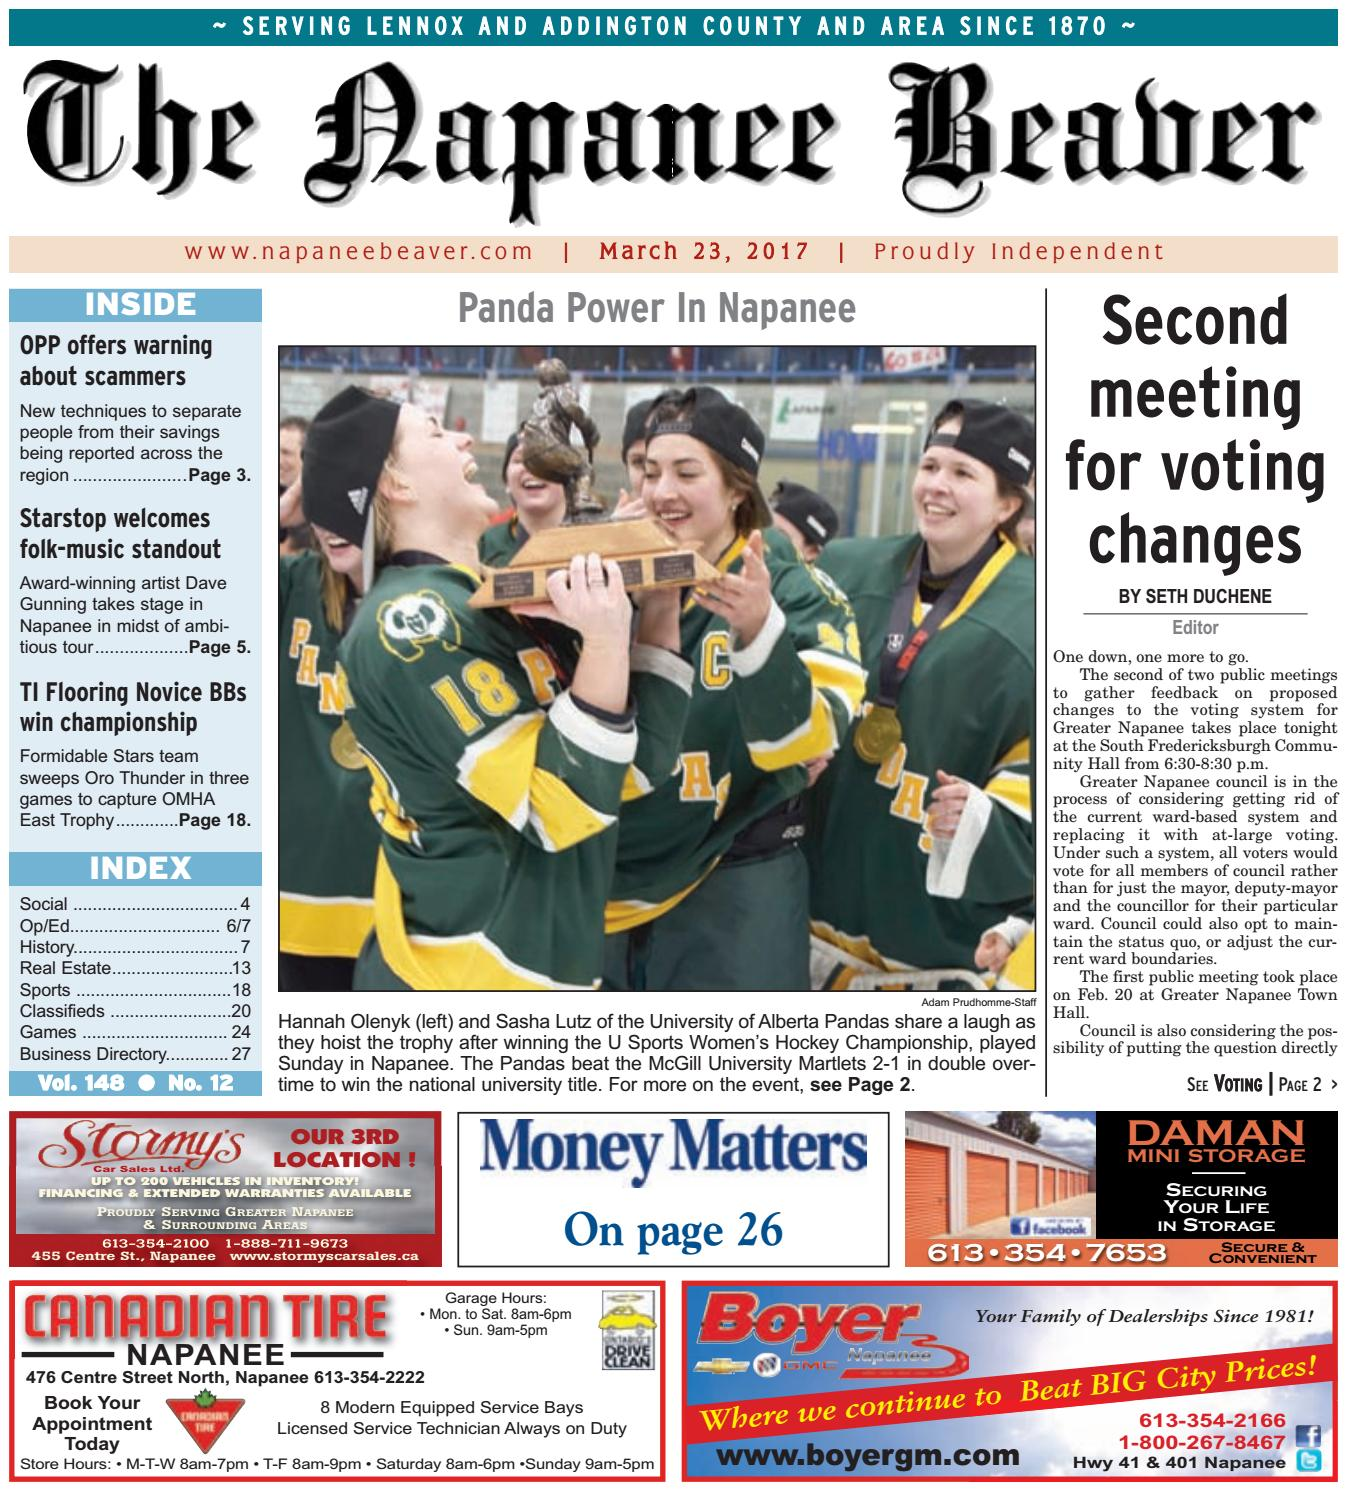 Napanee Beaver March 23 2017 by The Napanee Beaver issuu